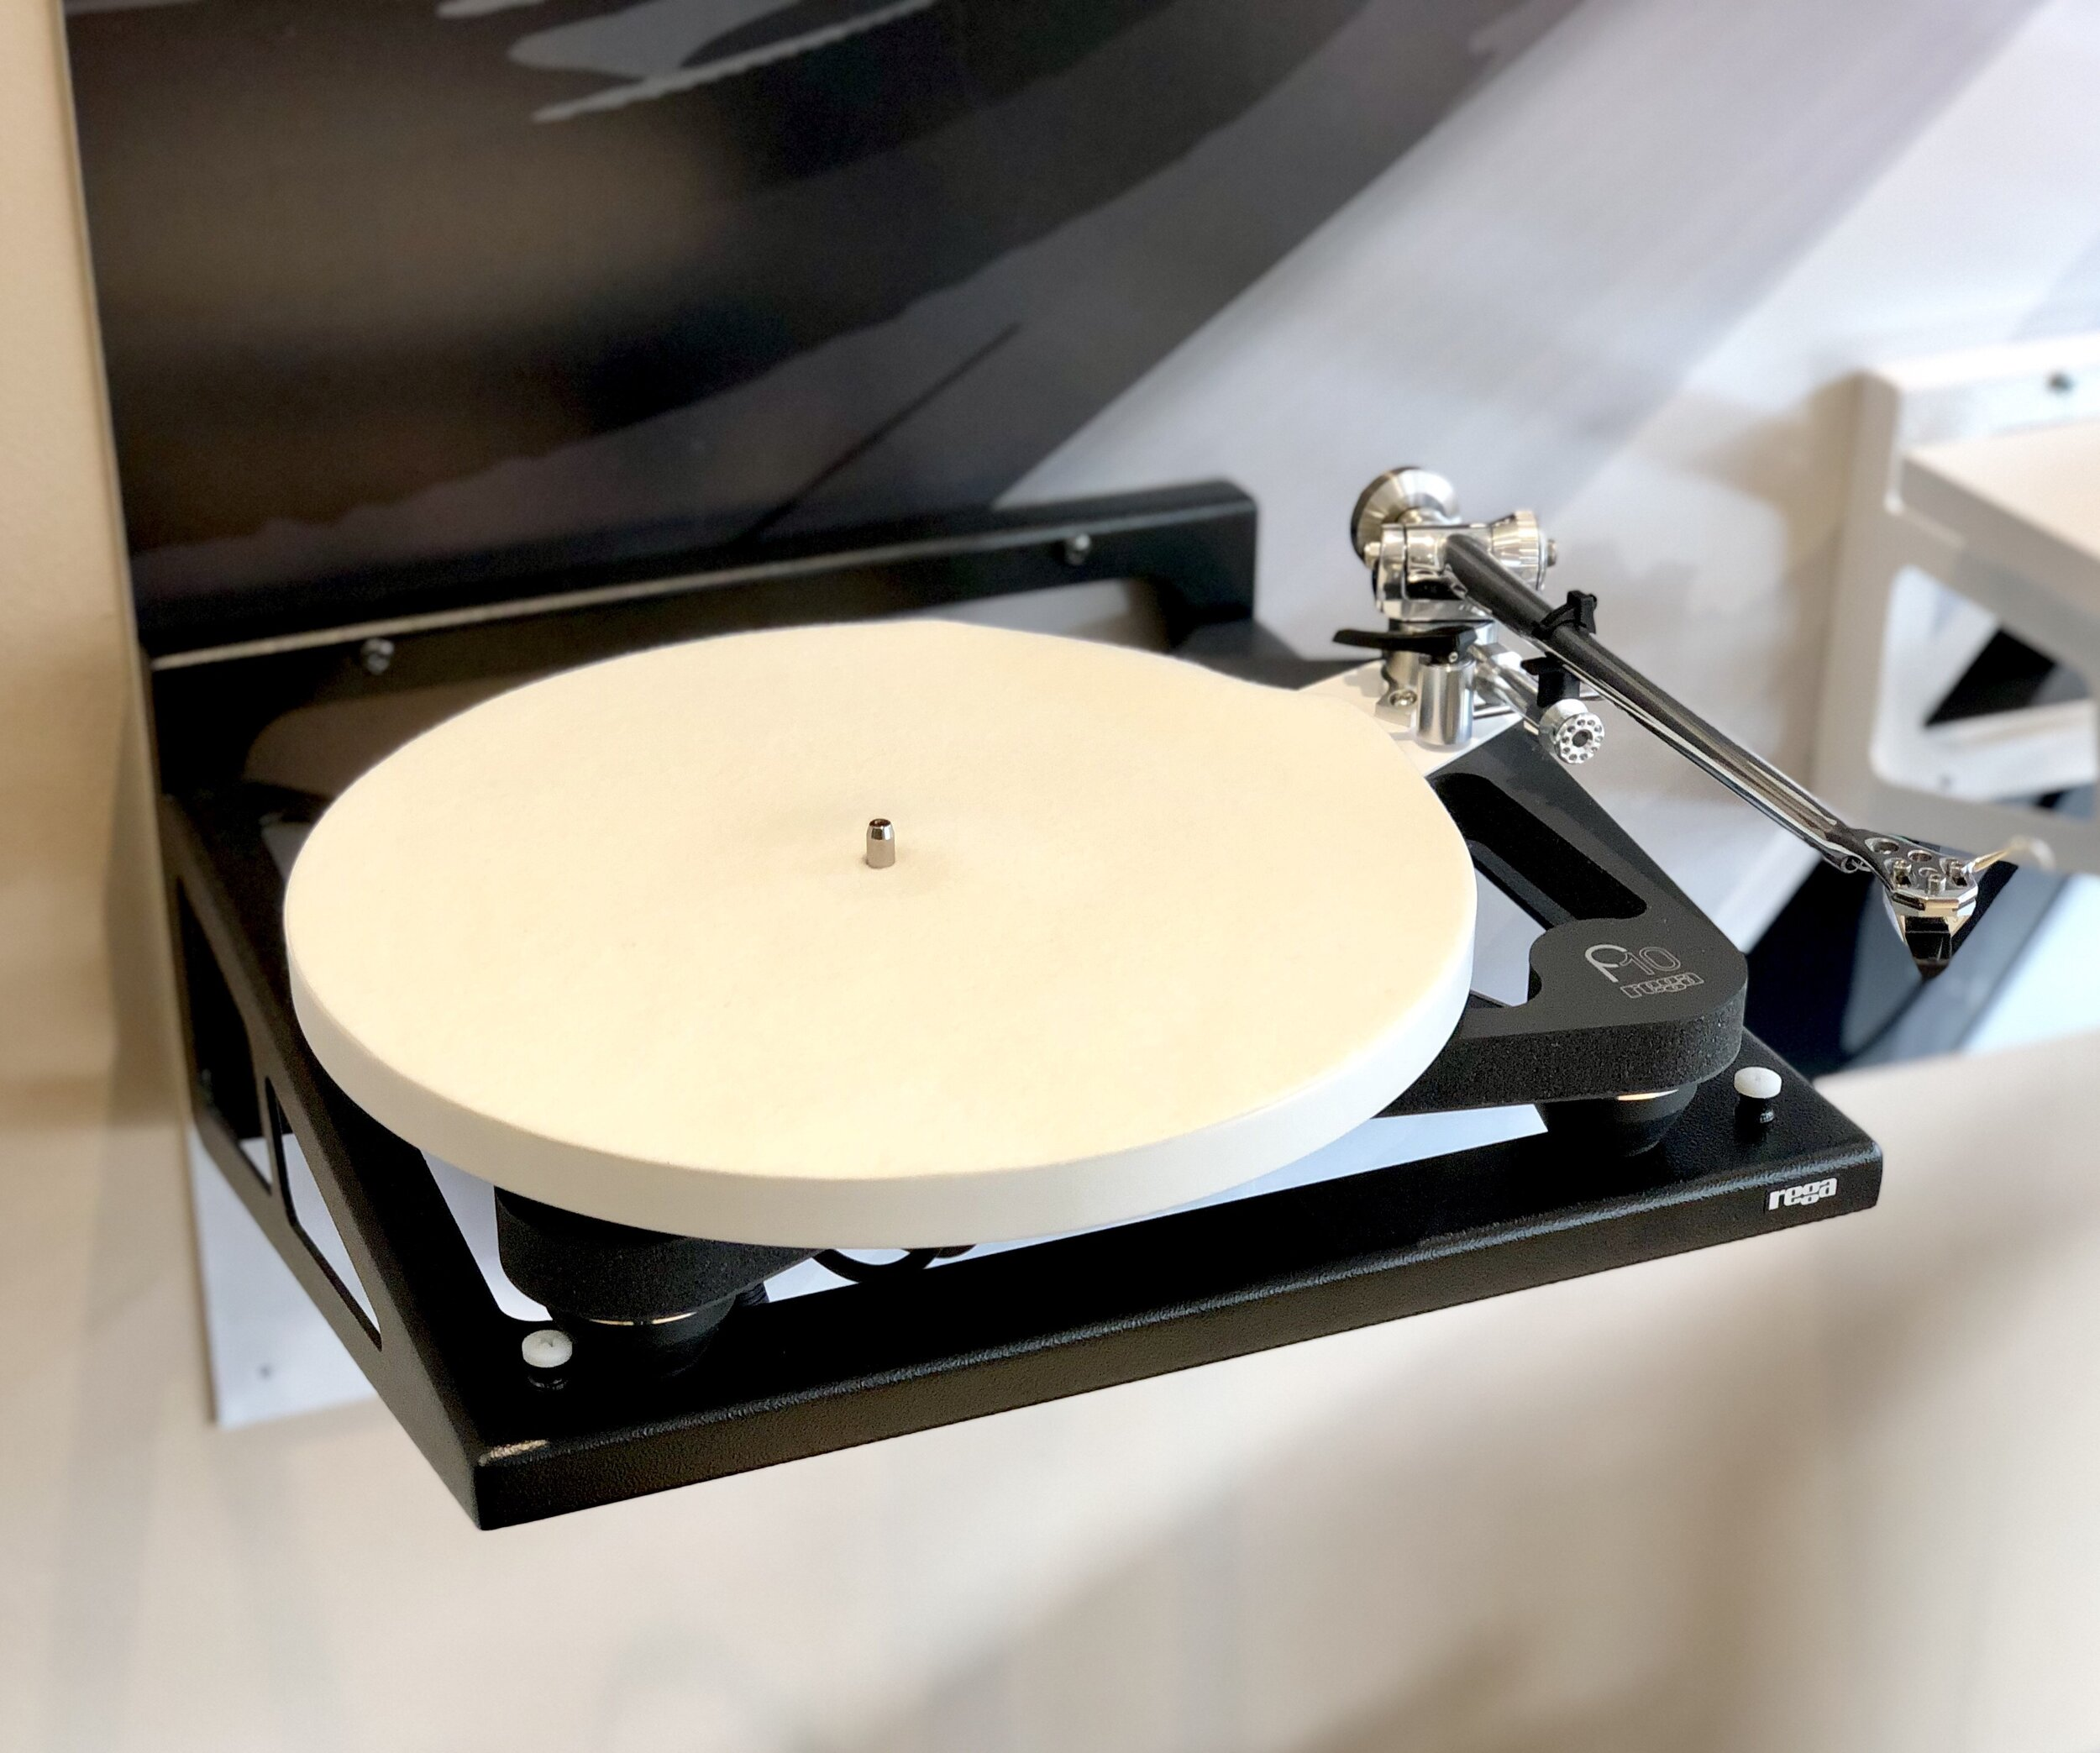 The Rega planar 10 on display in the portsmouth store